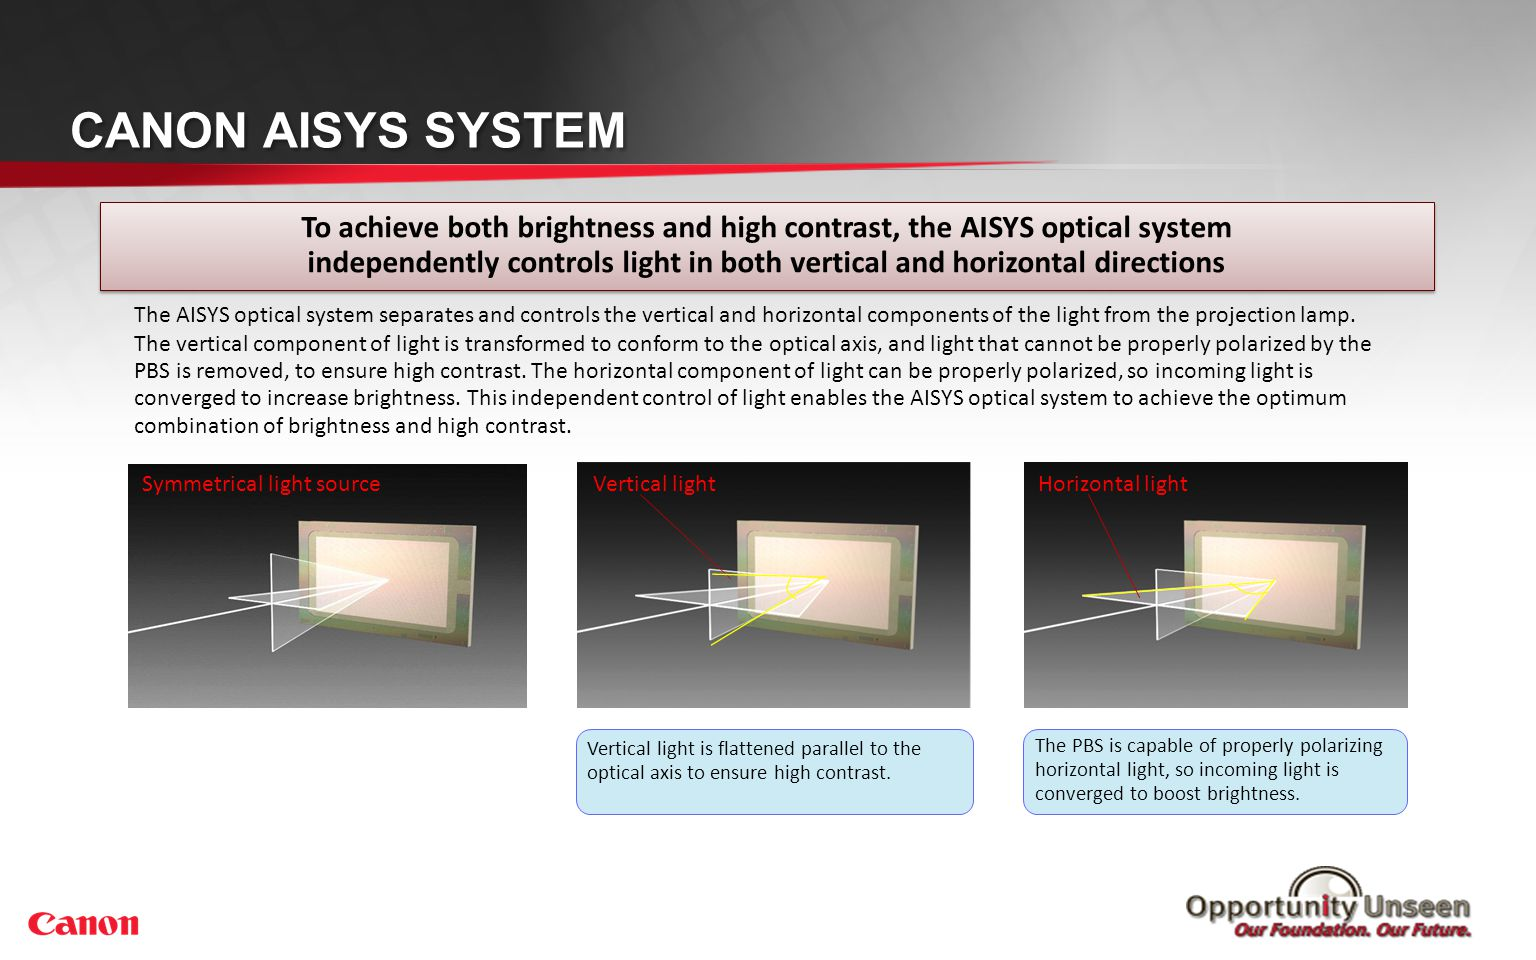 To achieve both brightness and high contrast, the AISYS optical system independently controls light in both vertical and horizontal directions To achi